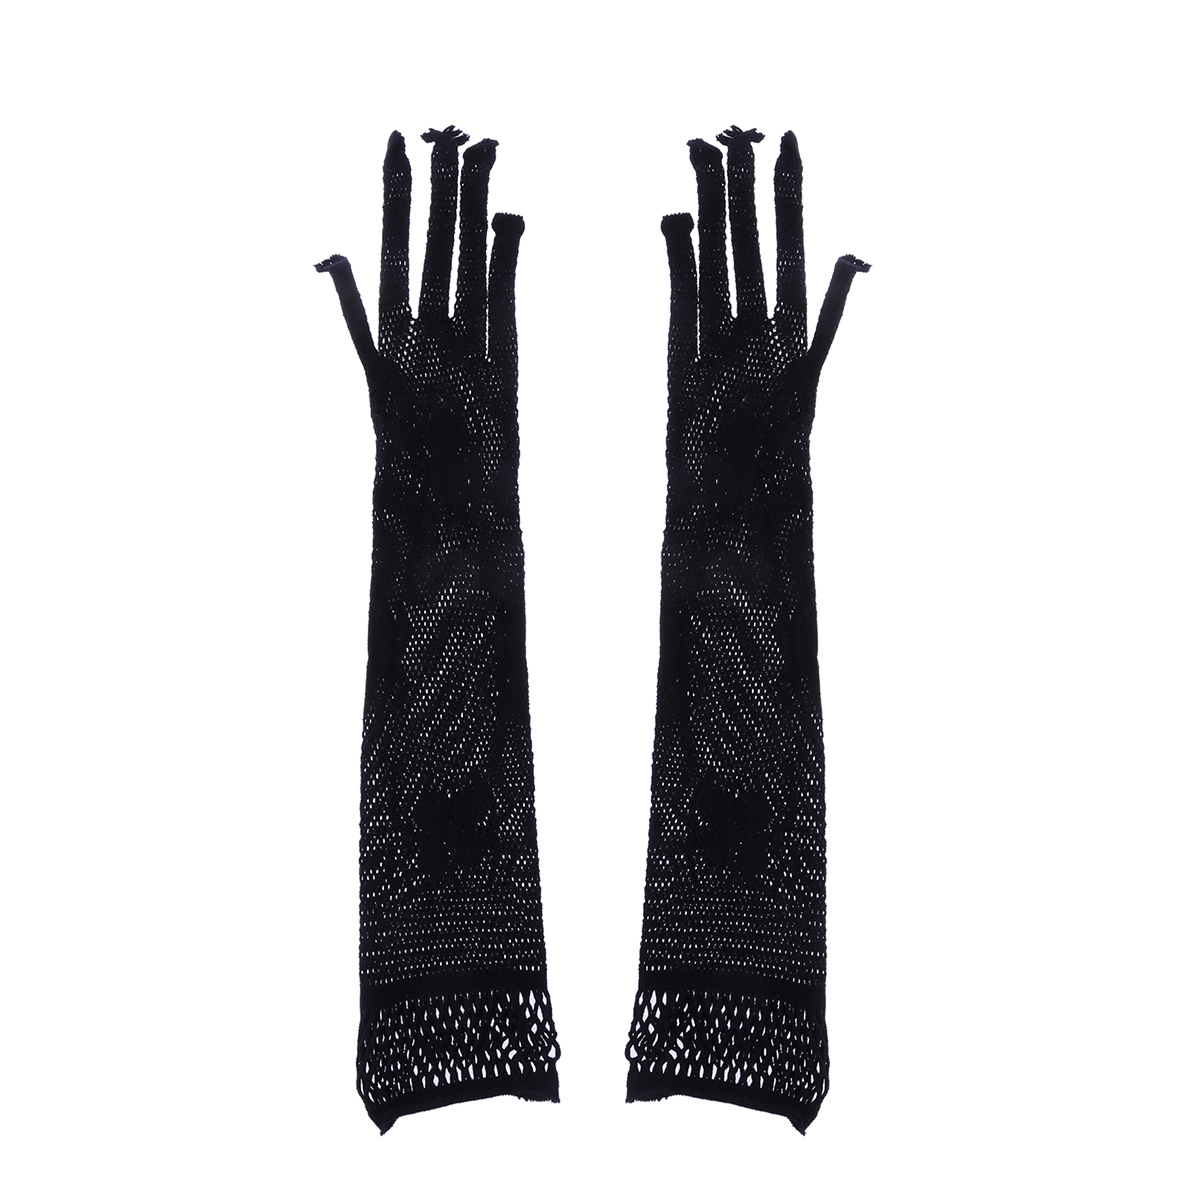 1 Pair Women Cosplay Gloves Noble Mysterious Black Lace Long Gloves For Costume Party Halloween Girls Cosplay